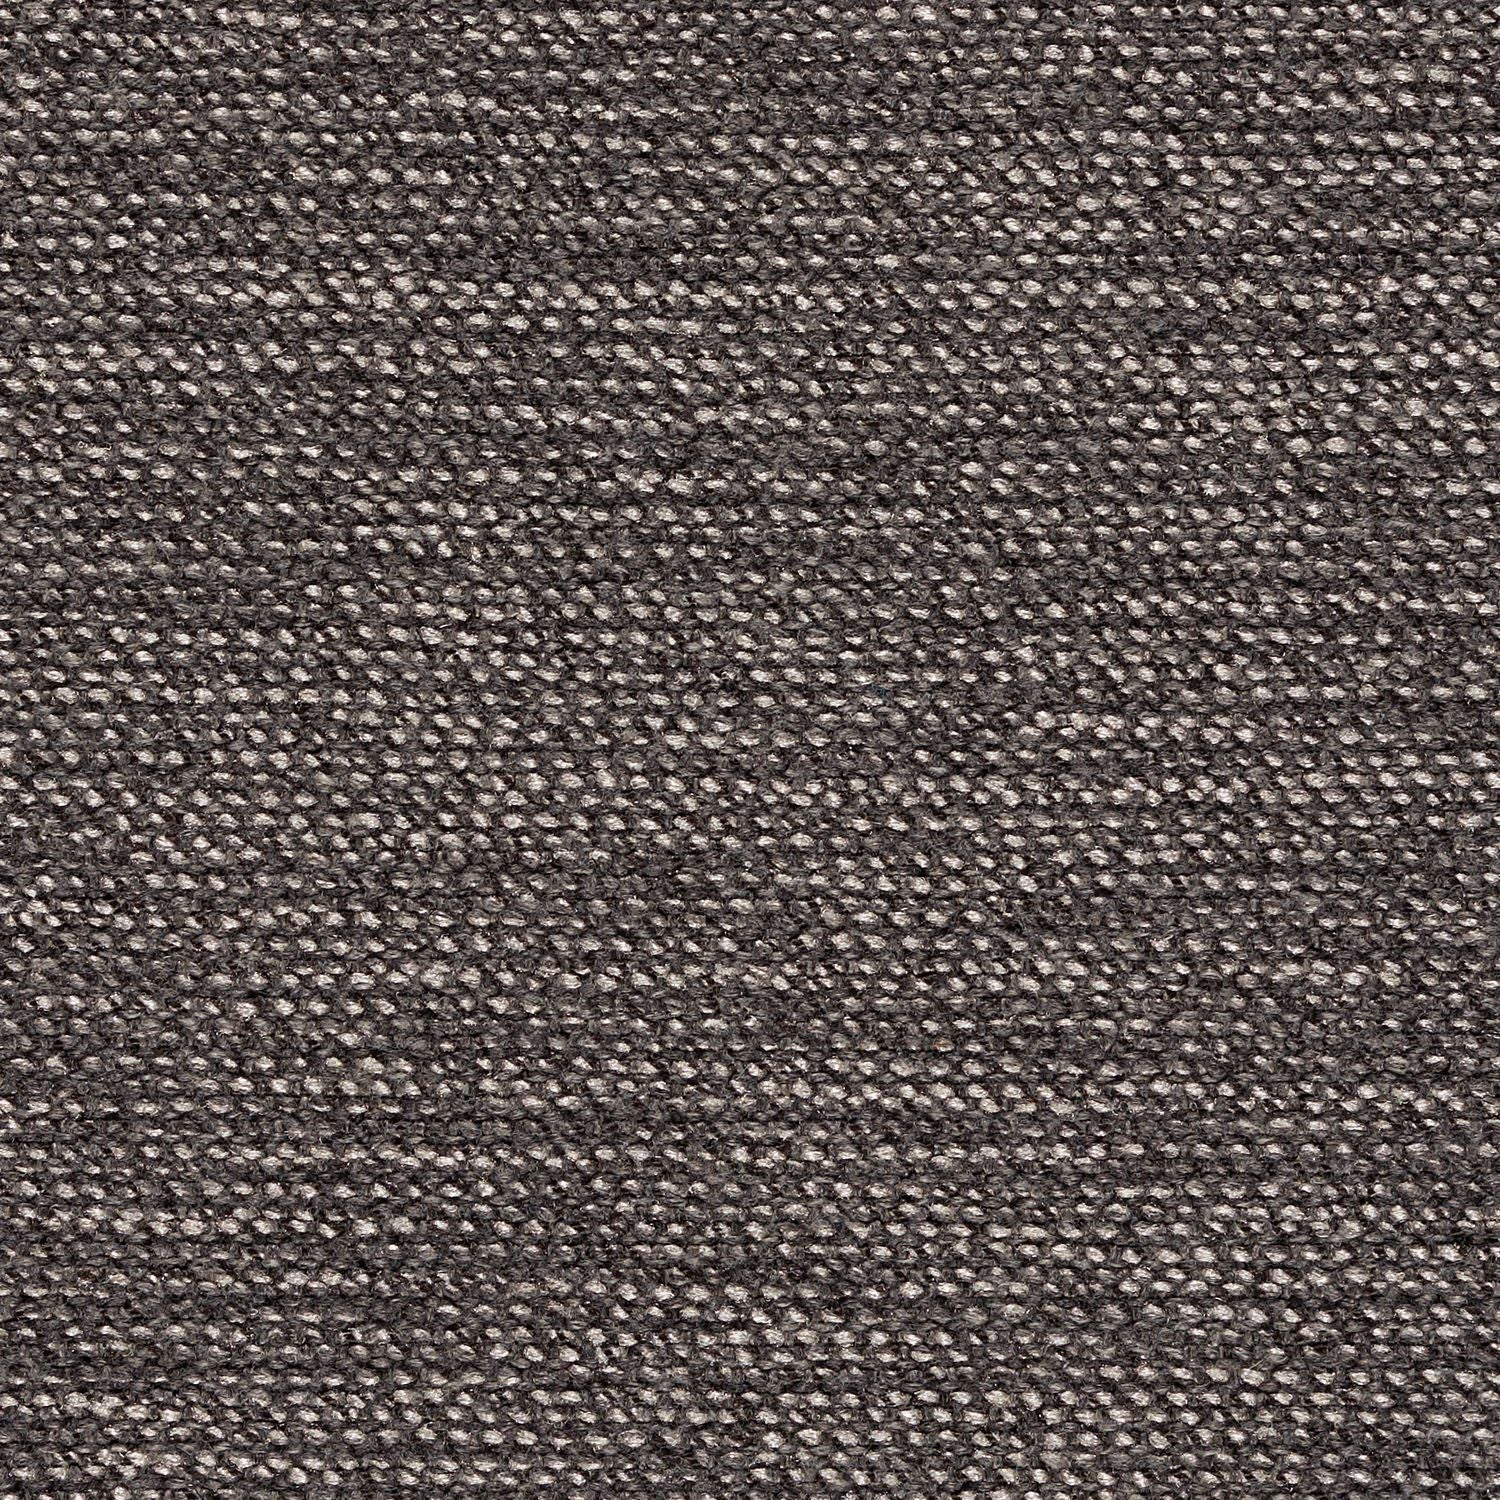 Superspun - Denier - 4064 - 02